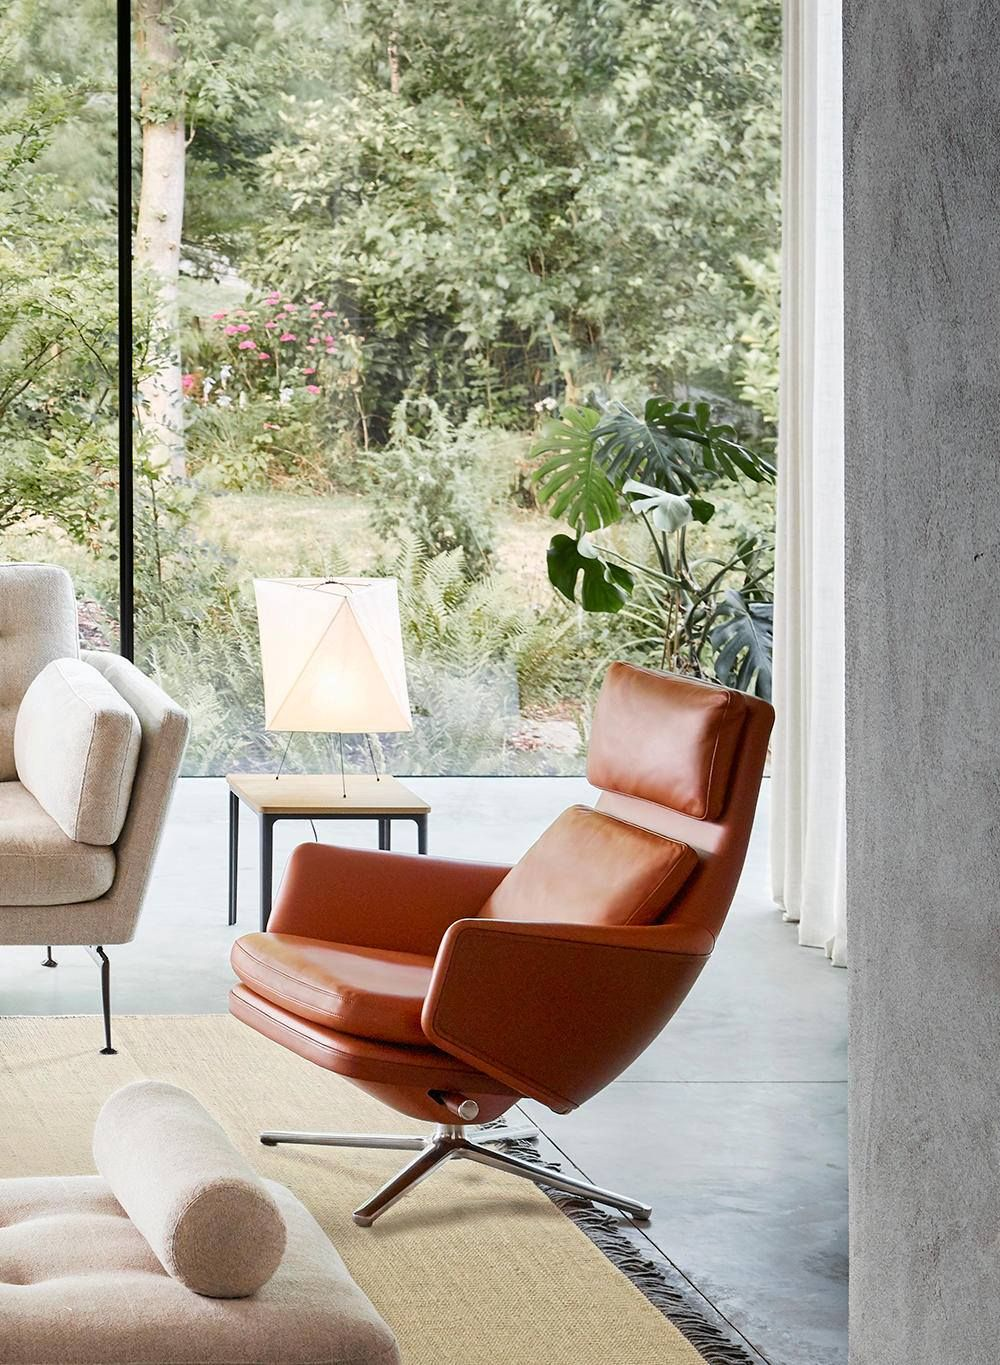 Vitra Relaxing Now Has A New Meaning The Gran Contemporary Designers Furniture Da Vinci Lifestyle Contemporary Furniture Design Furniture Design Lounge Chair